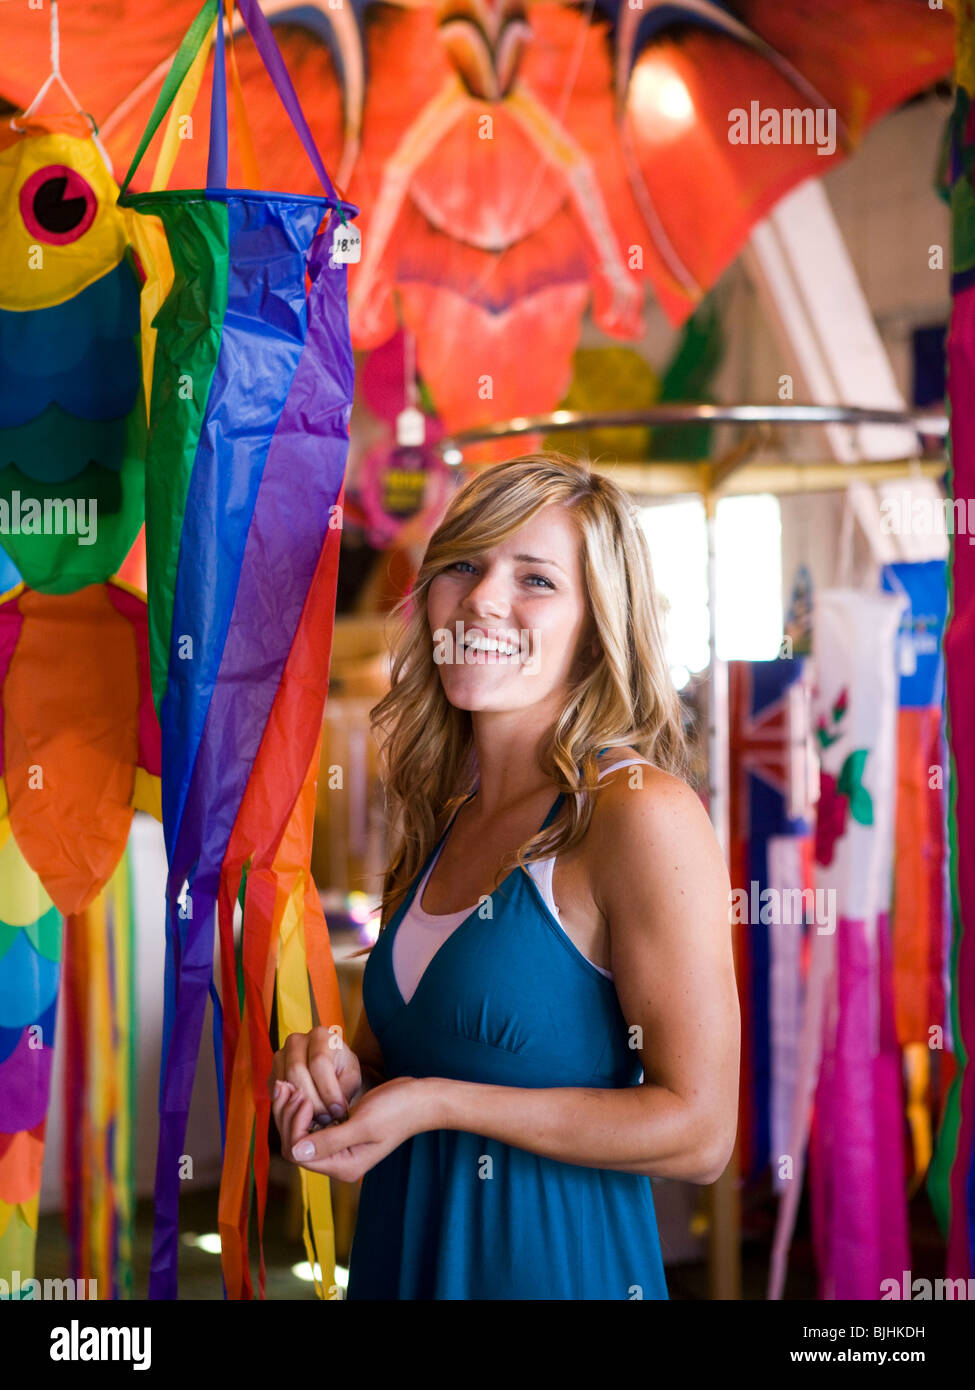 woman in a kite store - Stock Image